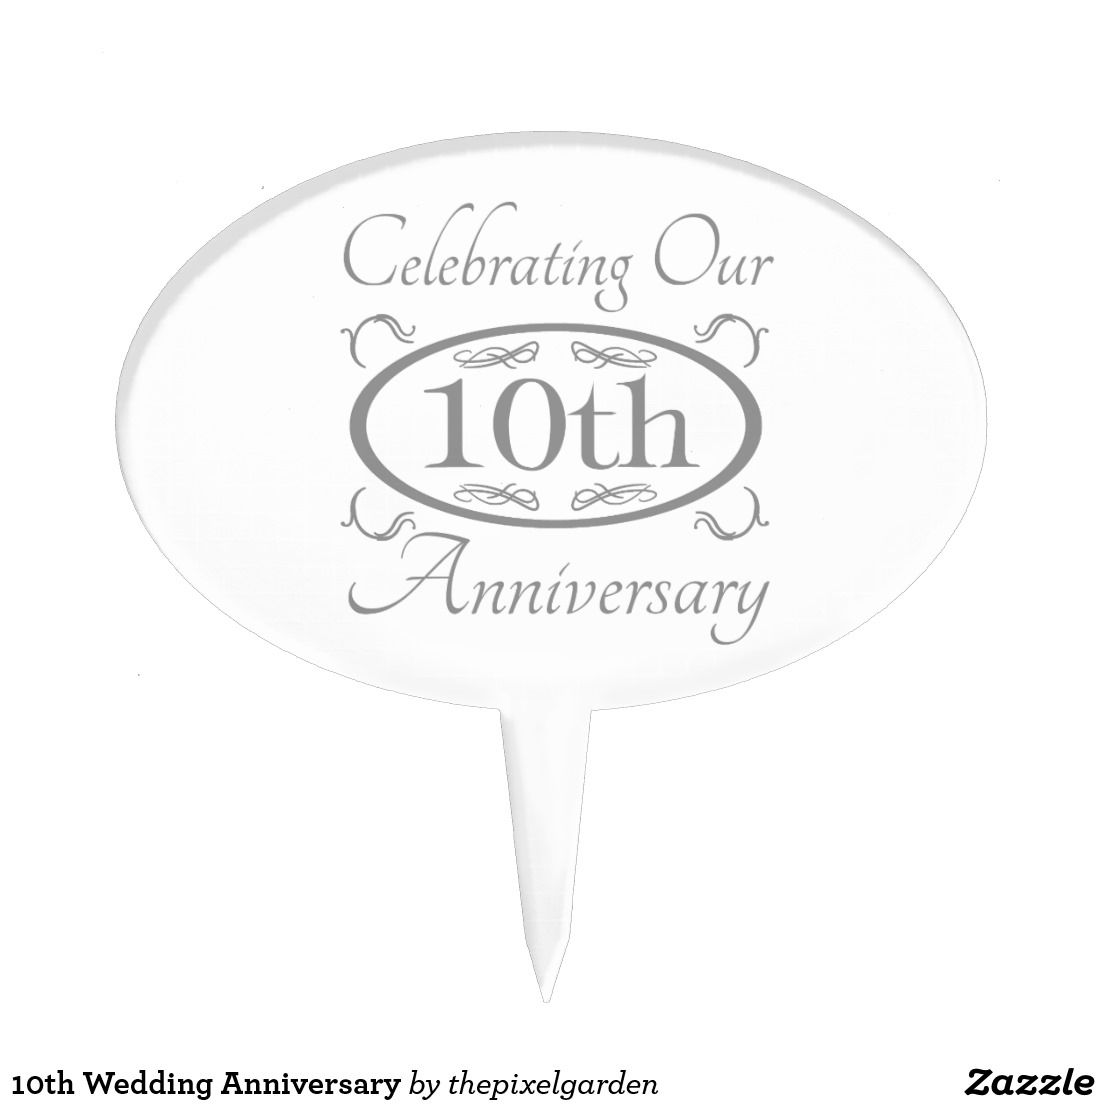 10th Wedding Anniversary Cake Topper. A stylish and elegant design ...